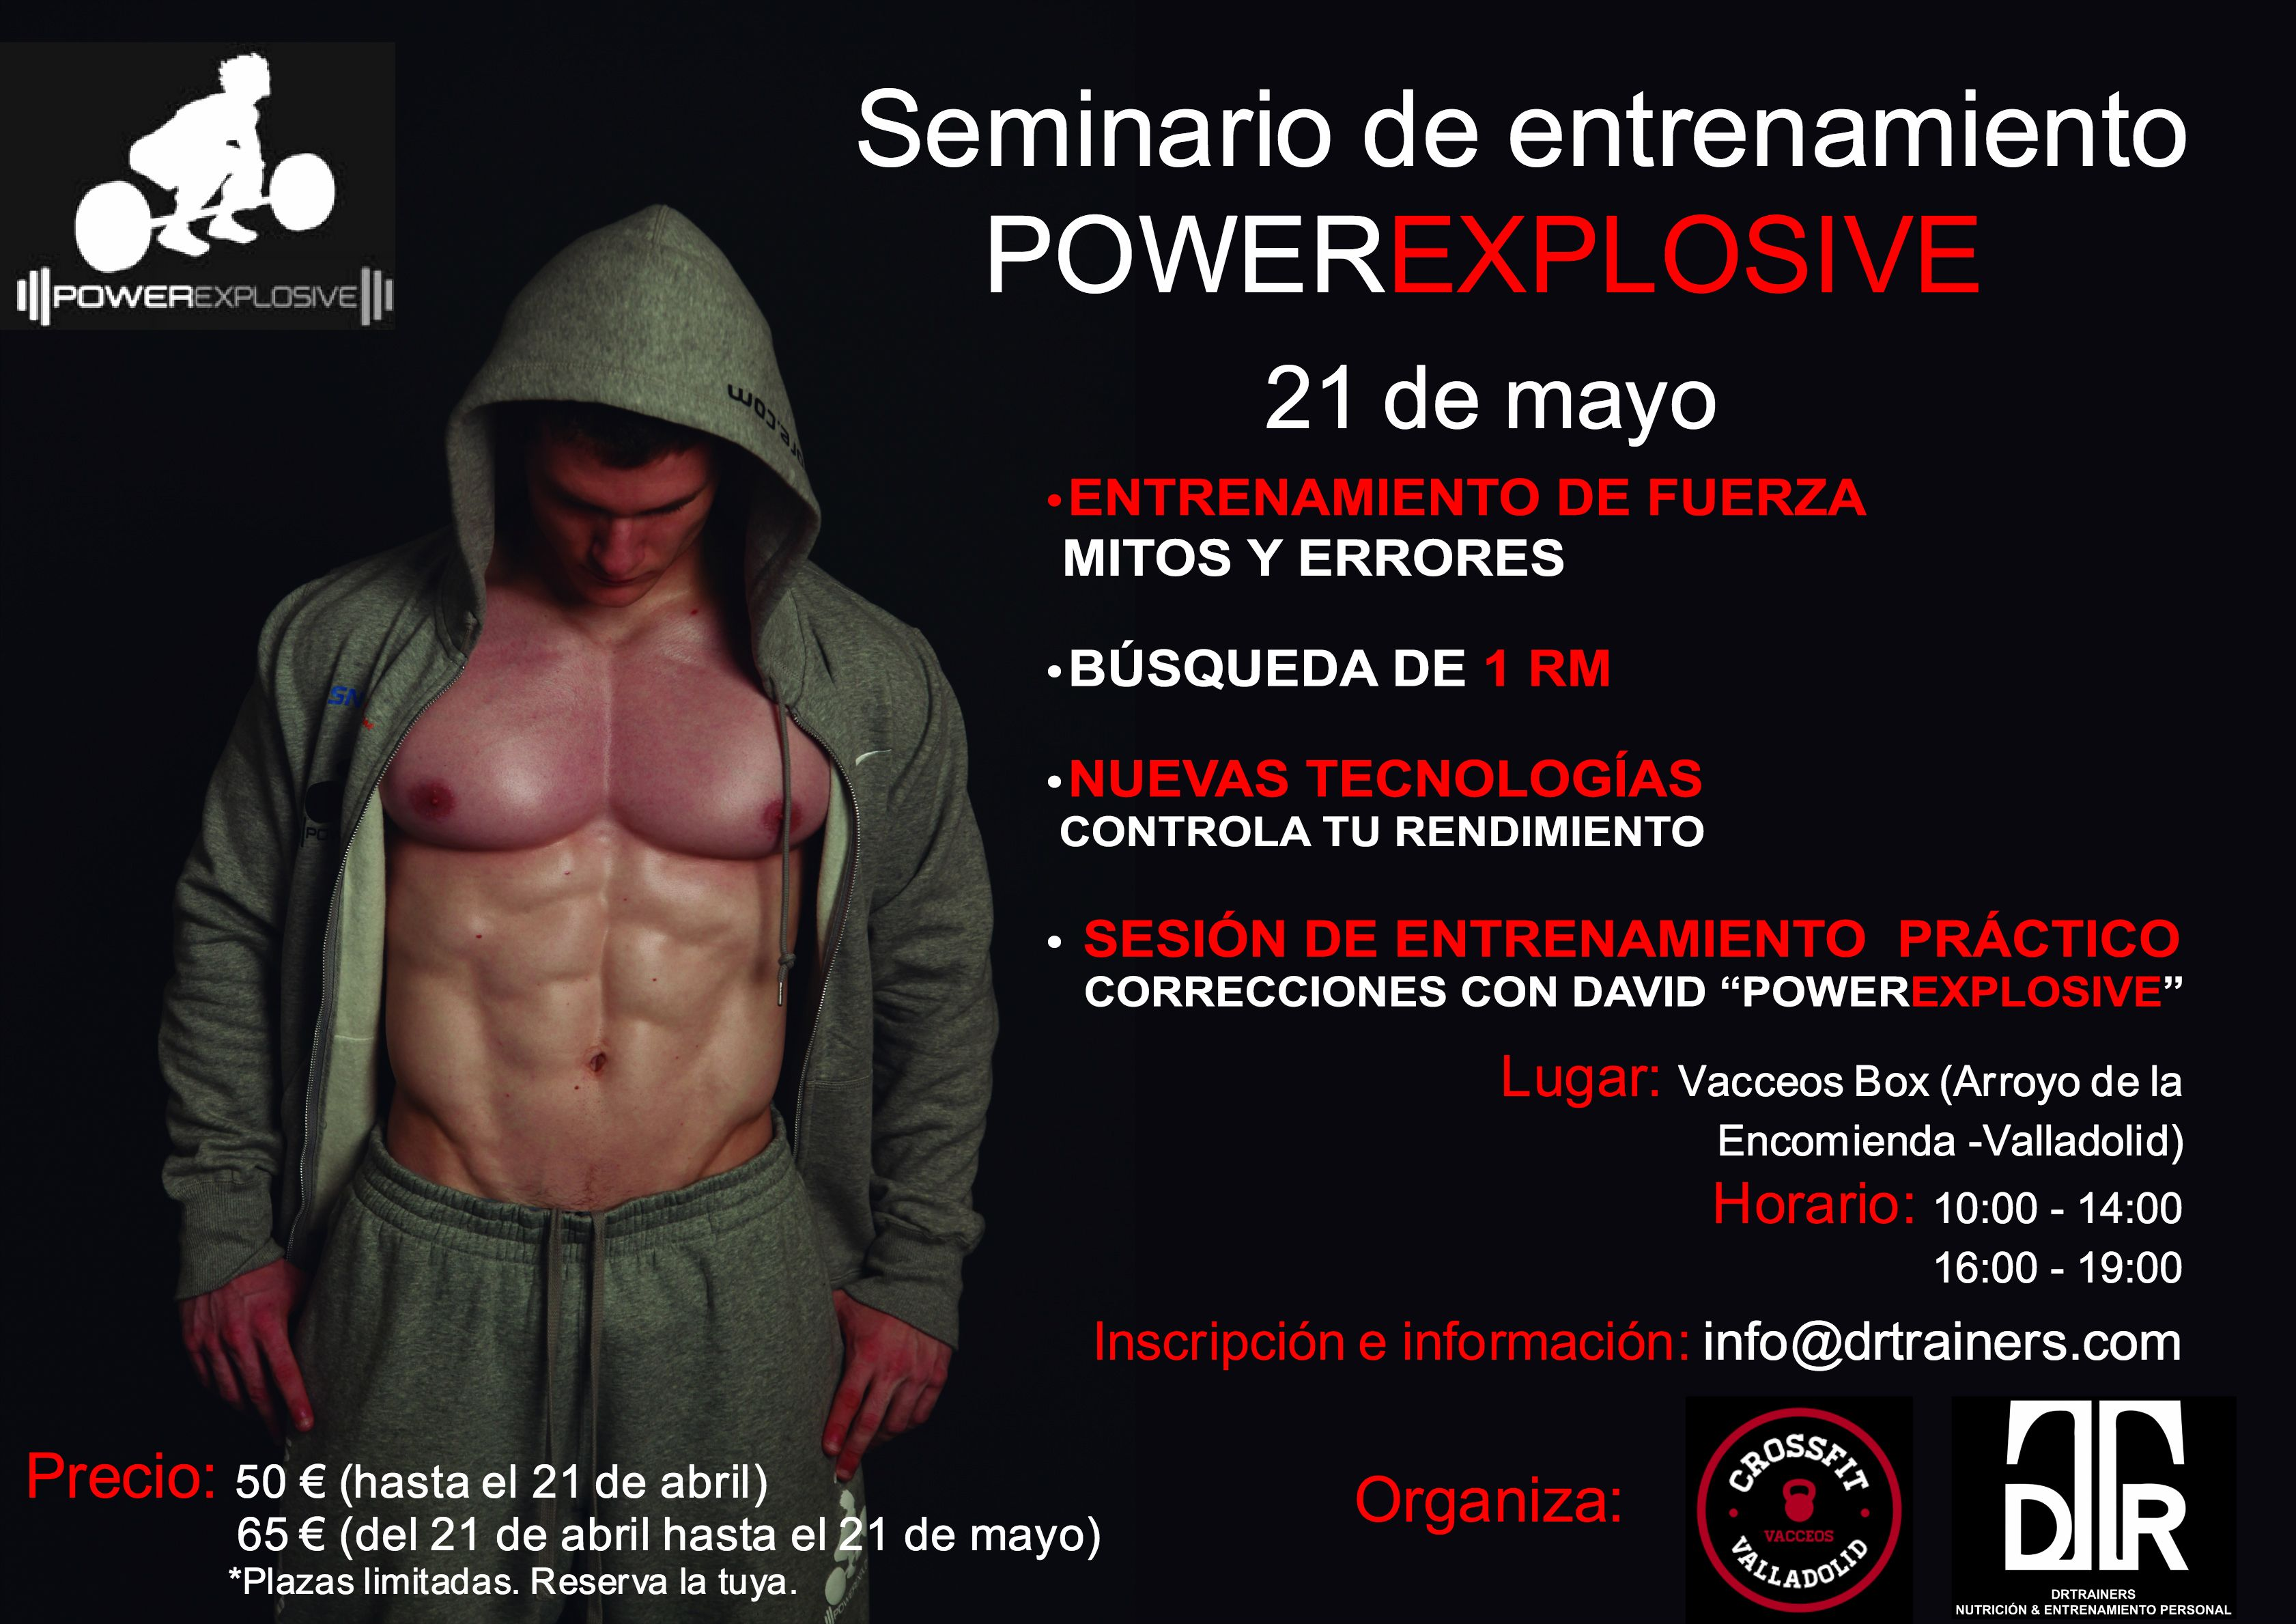 POWEREXPLOSIVE VALLADOLID